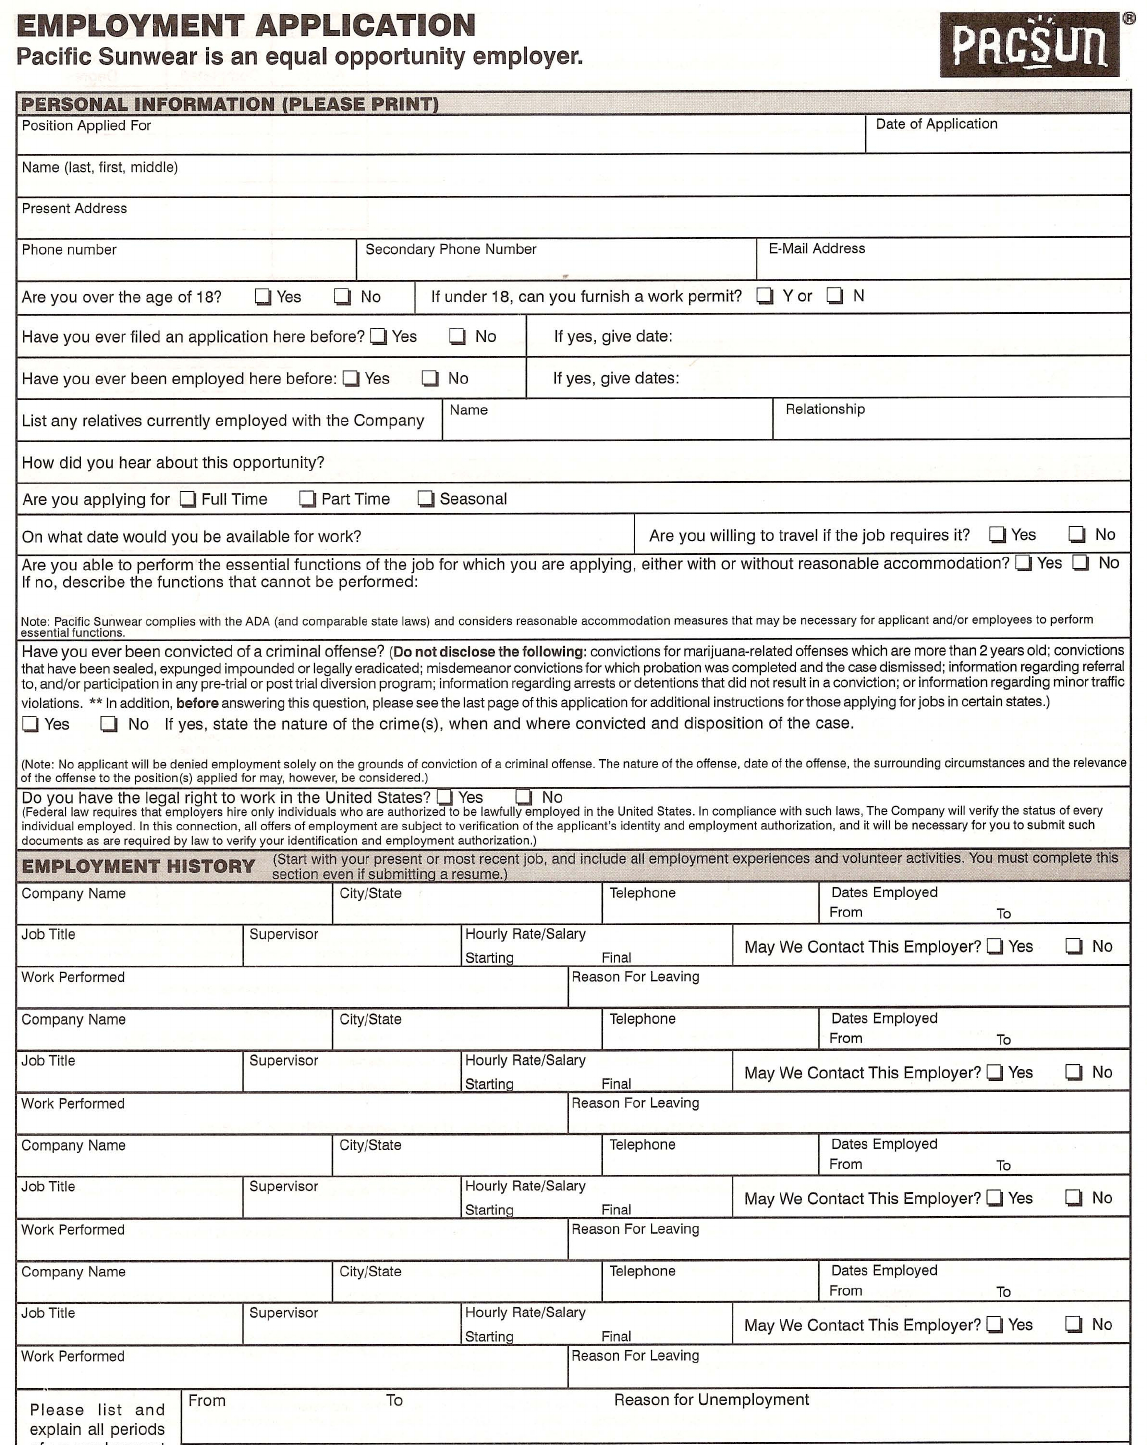 Free Printable Pacsun Job Application Form - Free Printable Job Application Form Pdf